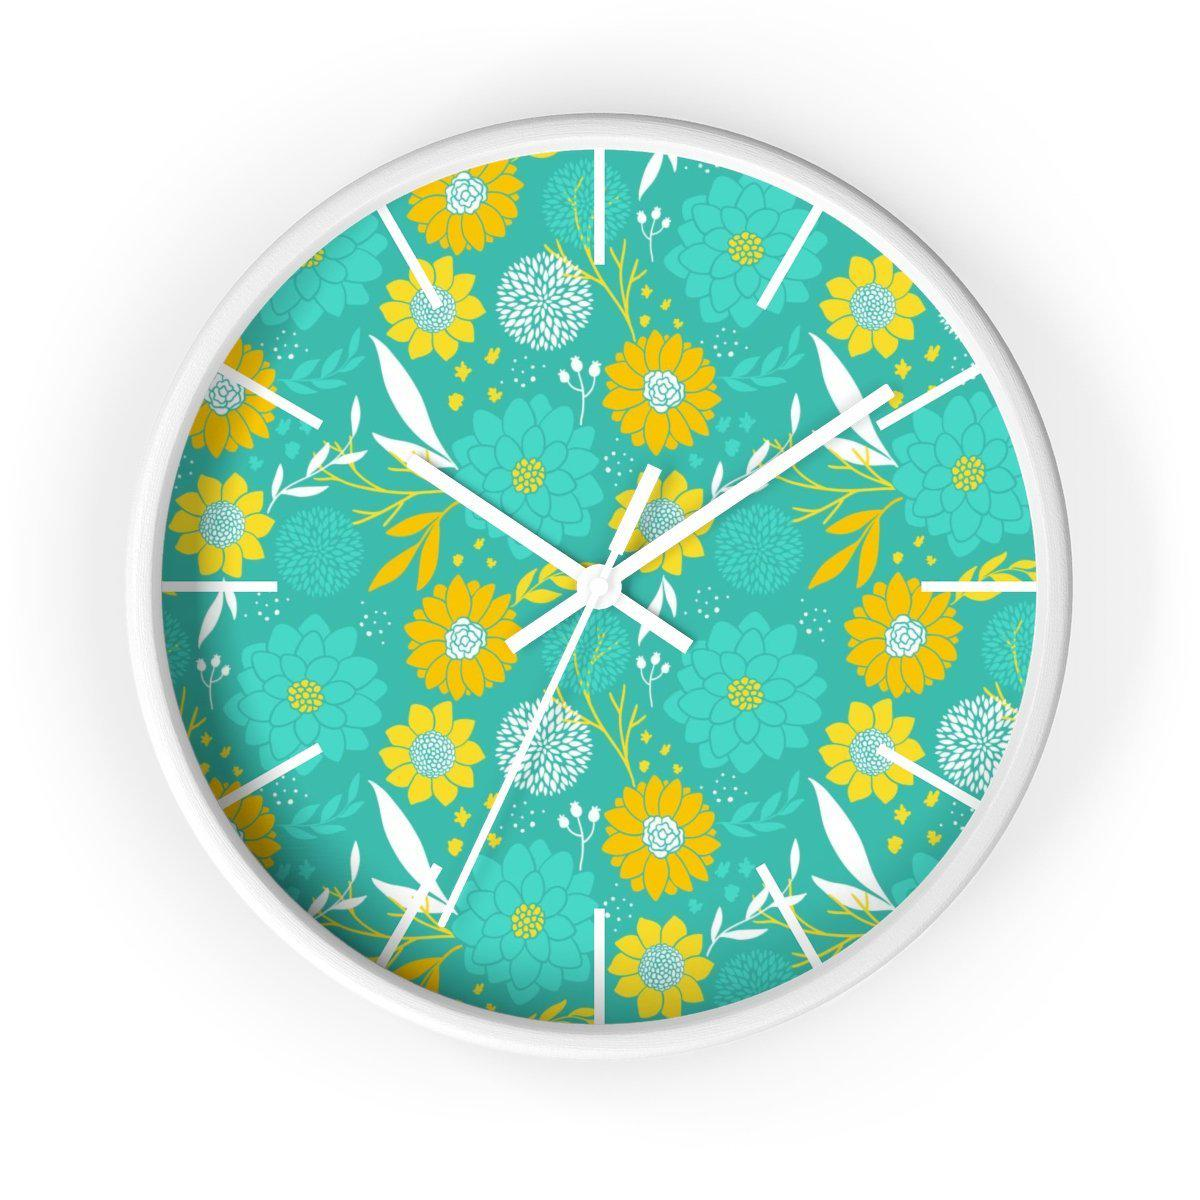 Maison d'Elite Floral Wall clock-Home Décor › Accents › Wall Decor › Clocks & Sculptures-Maison d'Elite-White-White-Très Elite